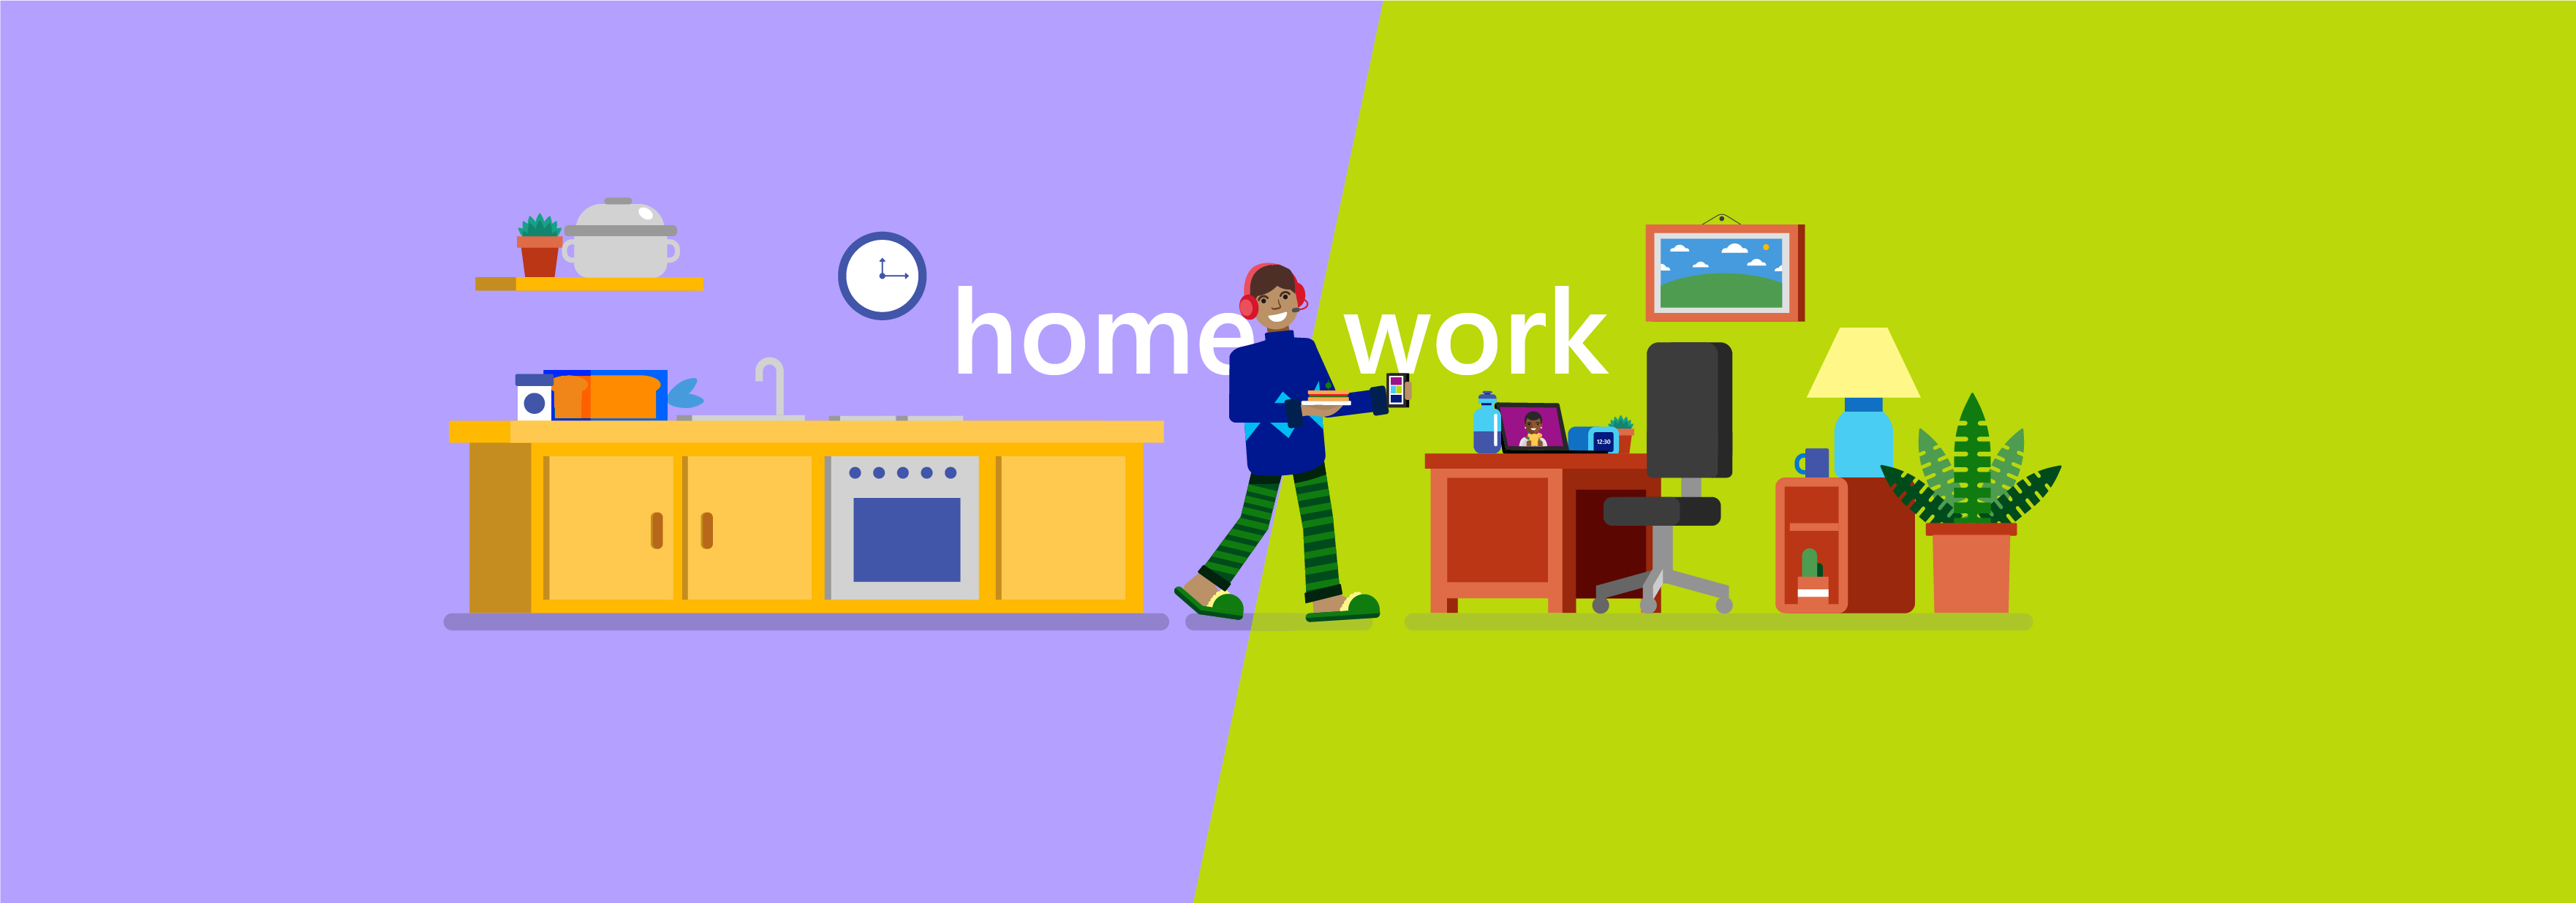 "Illustration of an employee working remotely and heading into a shorter meeting over lunch via video with the words ""Home Work"" in background"